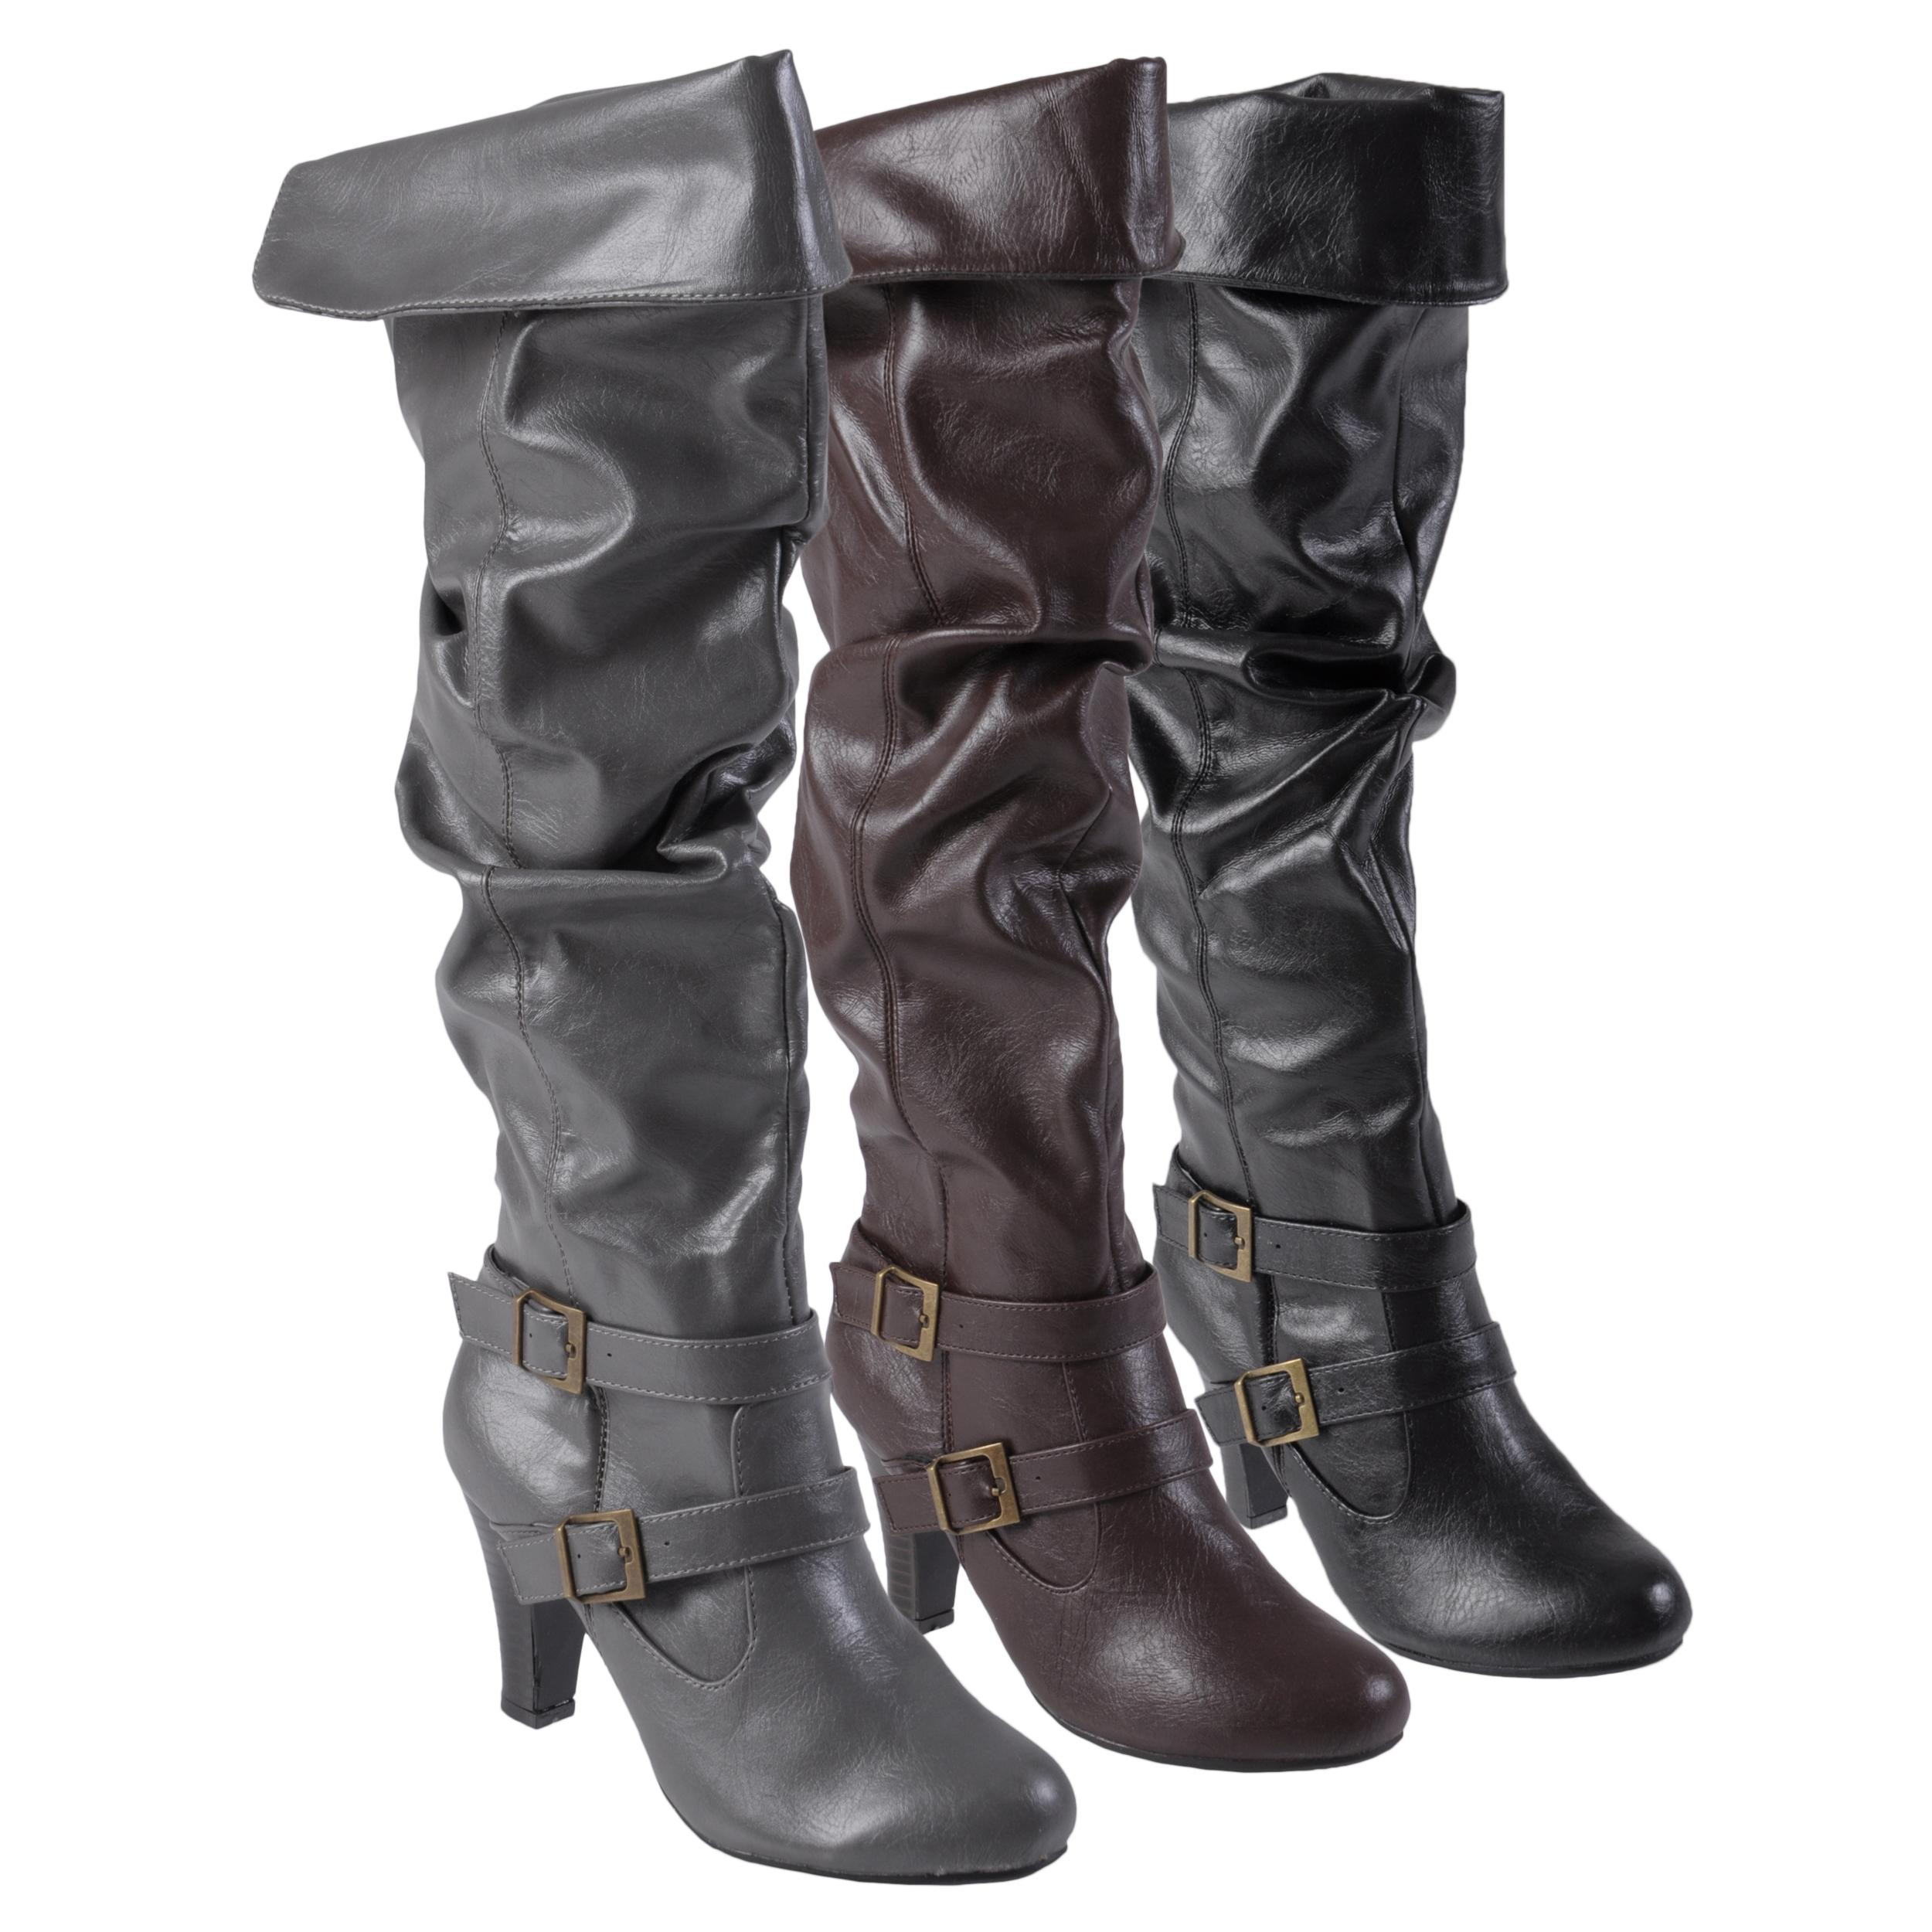 826de89b118fe Shop Journee Collection Women's 'Venus-95' Cuffed Accent Faux Leather Boots  - Free Shipping On Orders Over $45 - Overstock - 6191426